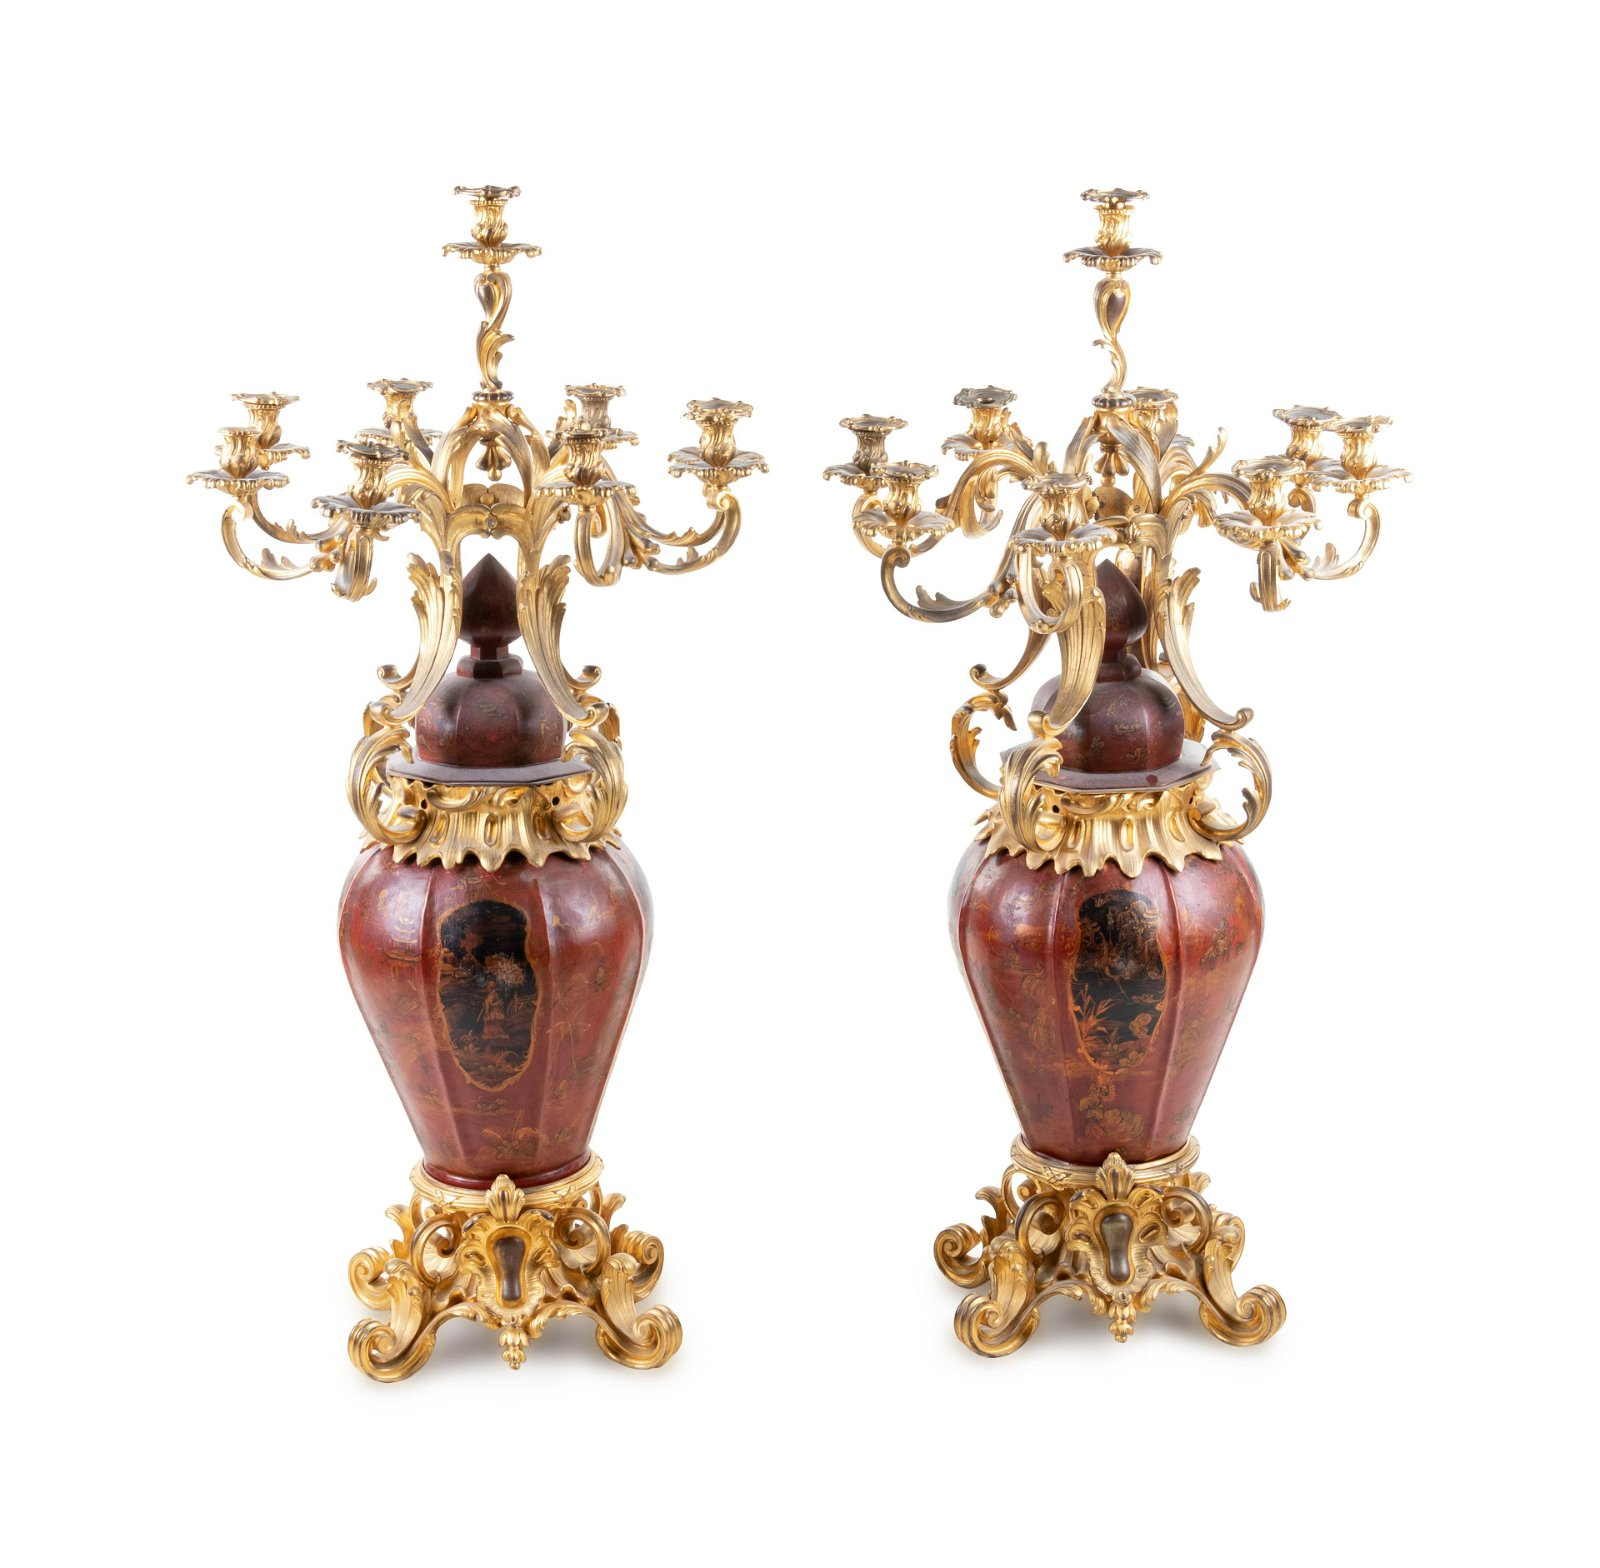 A Pair of Louis XV Style Gilt Bronze Mounted Tole